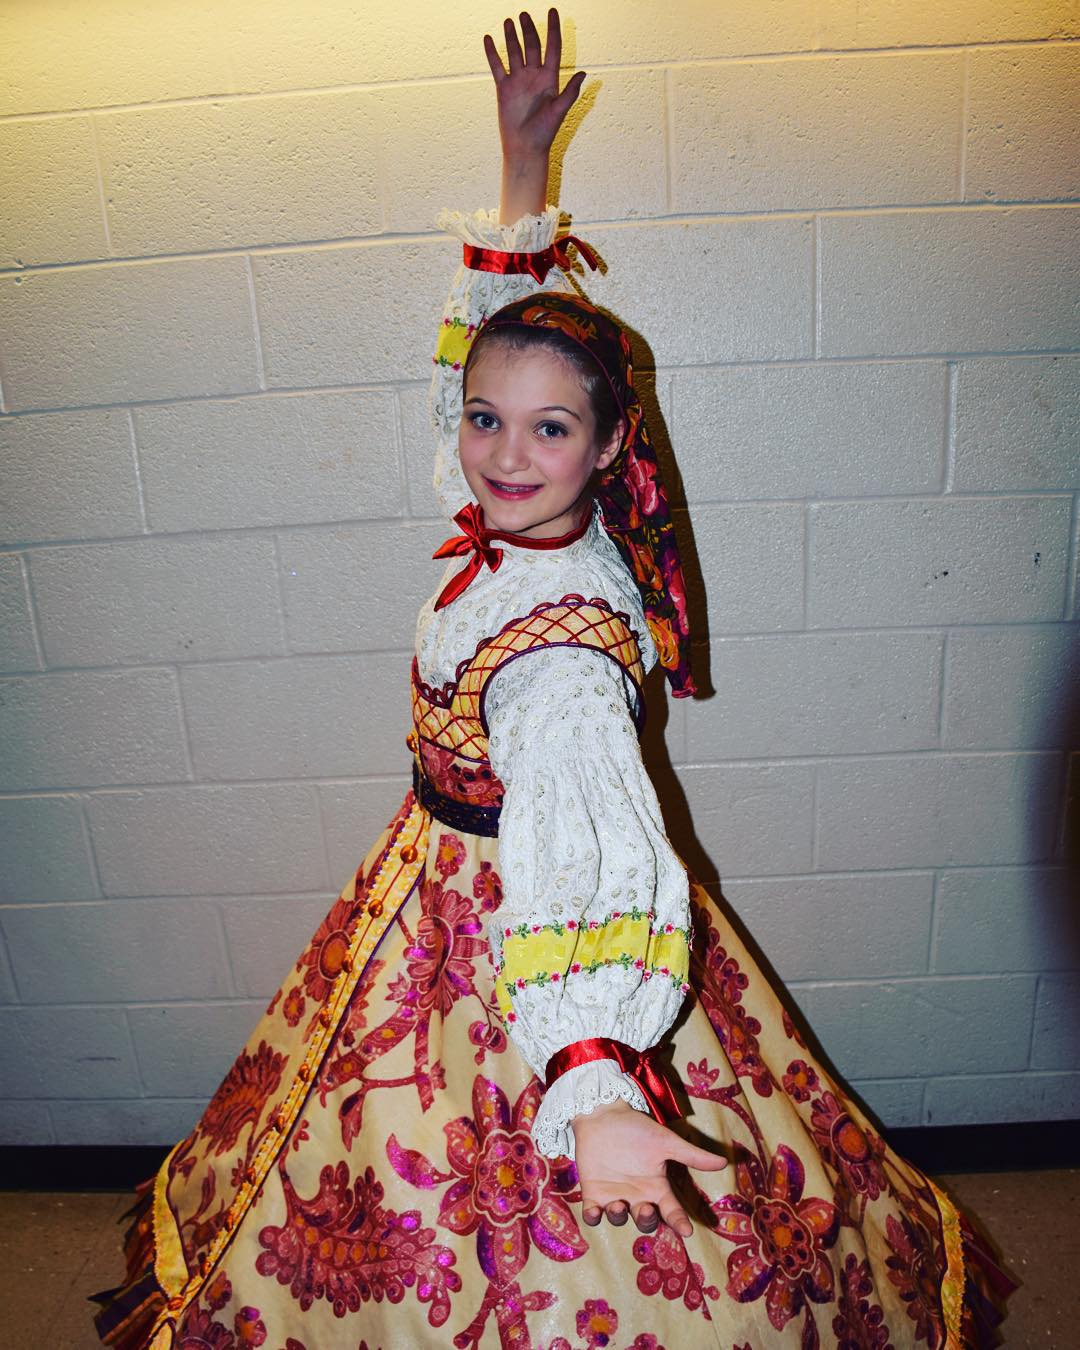 My beautiful Russian Nesting Doll from last night's final rehearsal for Nashville's Nutcracker at TPAC. First show is 2pm today, and we are very excited! #ballet #family